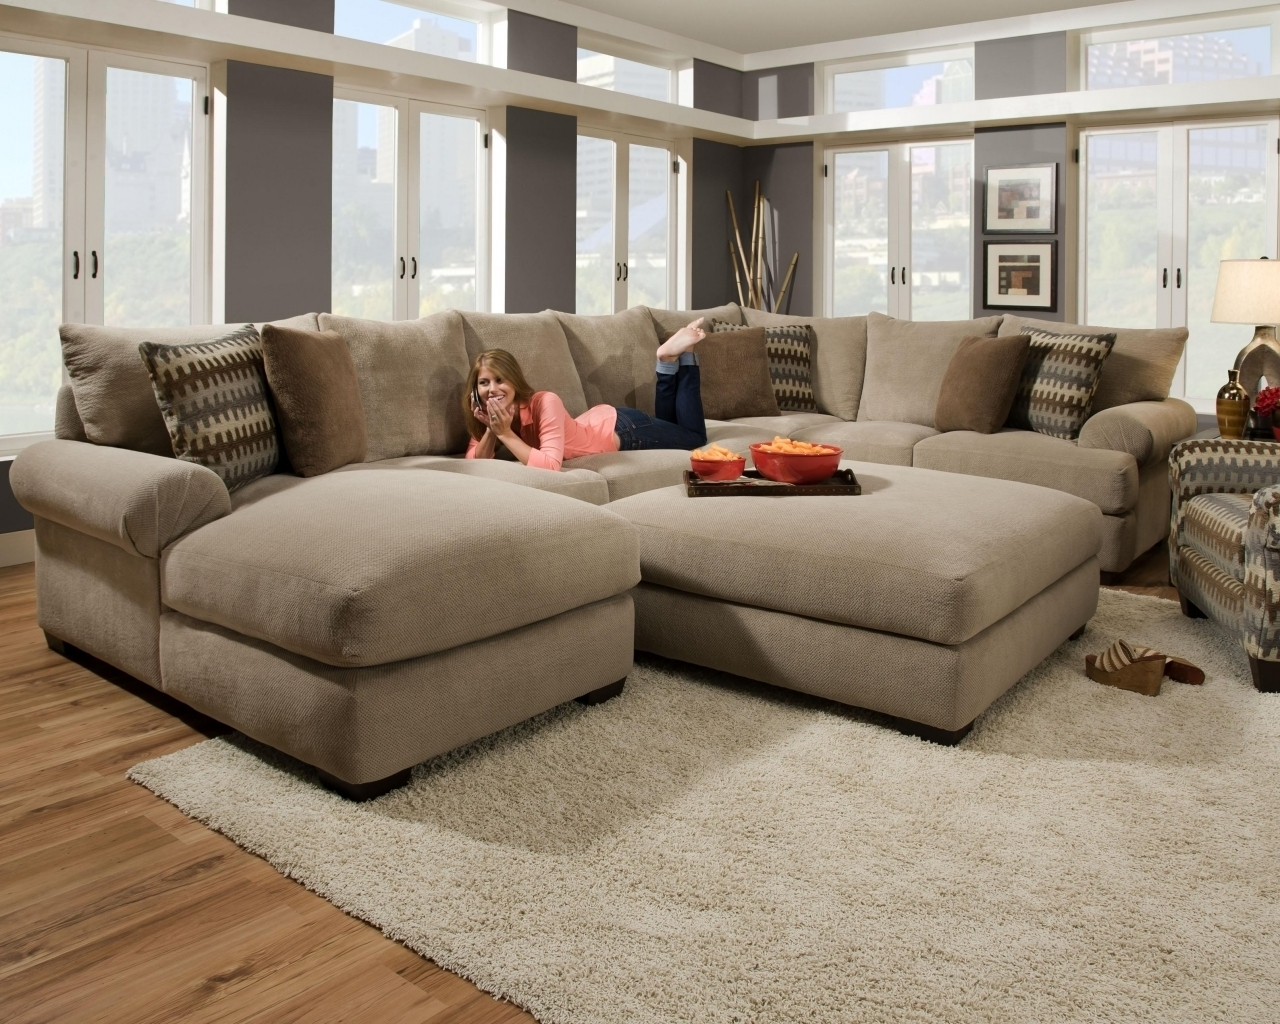 Newest Amazing Sectional Sofa With Oversized Ottoman 59 For Your Best In Sectional Sofas With Oversized Ottoman (View 10 of 20)